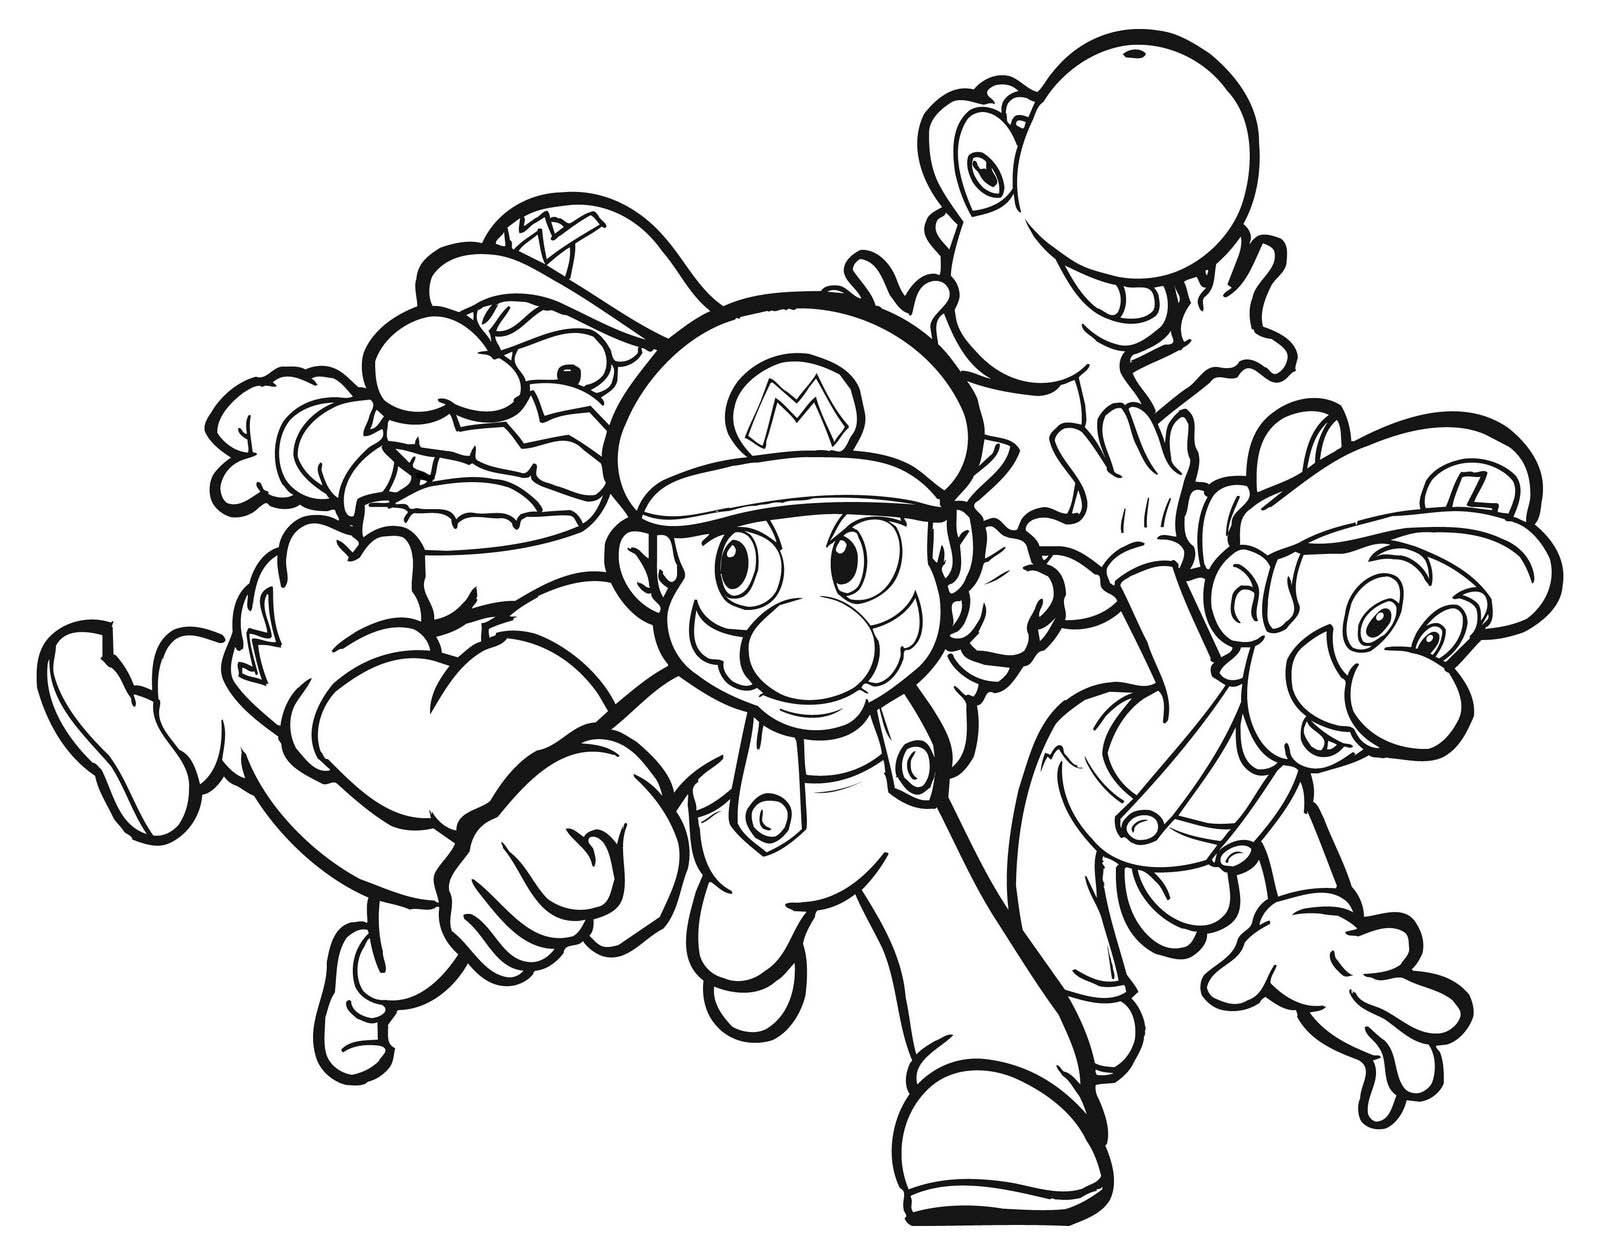 printable mario coloring pages Free Coloring Pages For Adults Printable Hard To Color Image 39  printable mario coloring pages